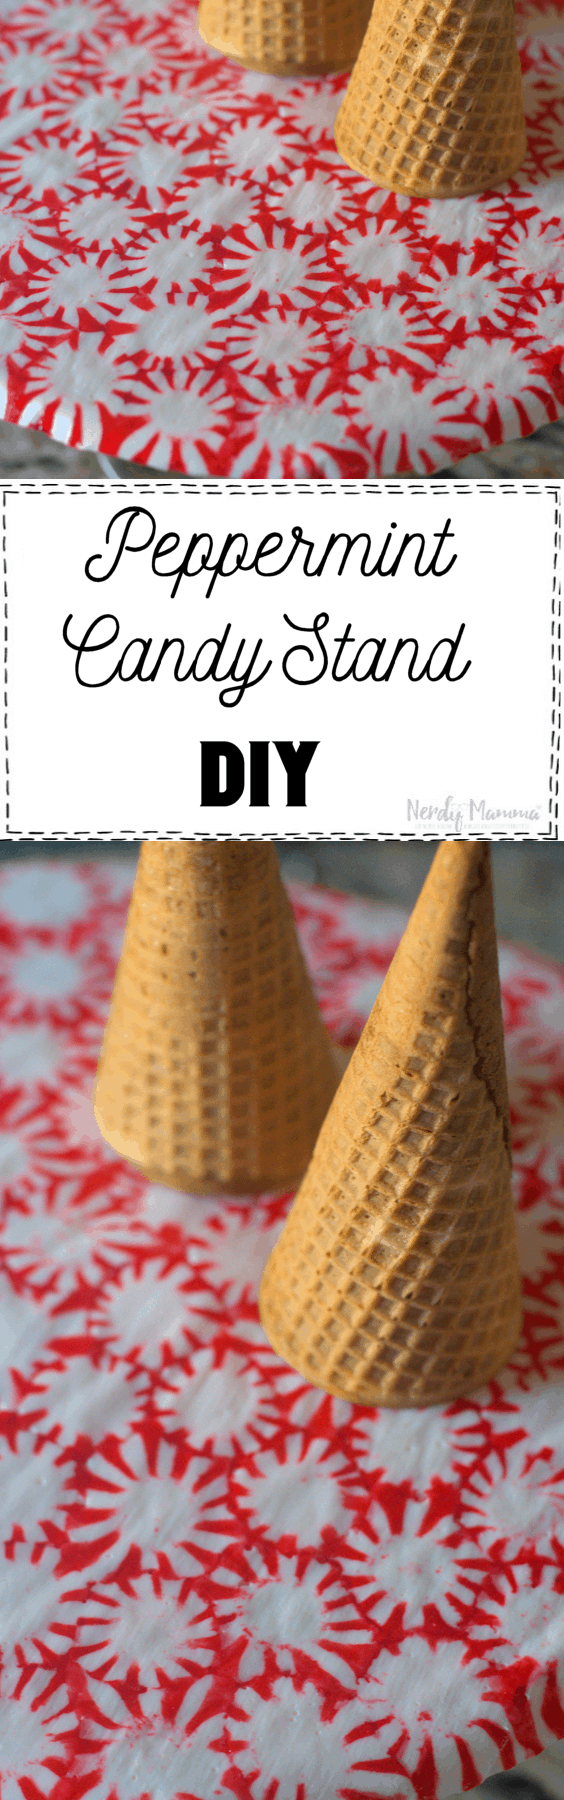 This Peppermint Candy Stand DIY is so cute and will seriously make your family and friends go WOW!